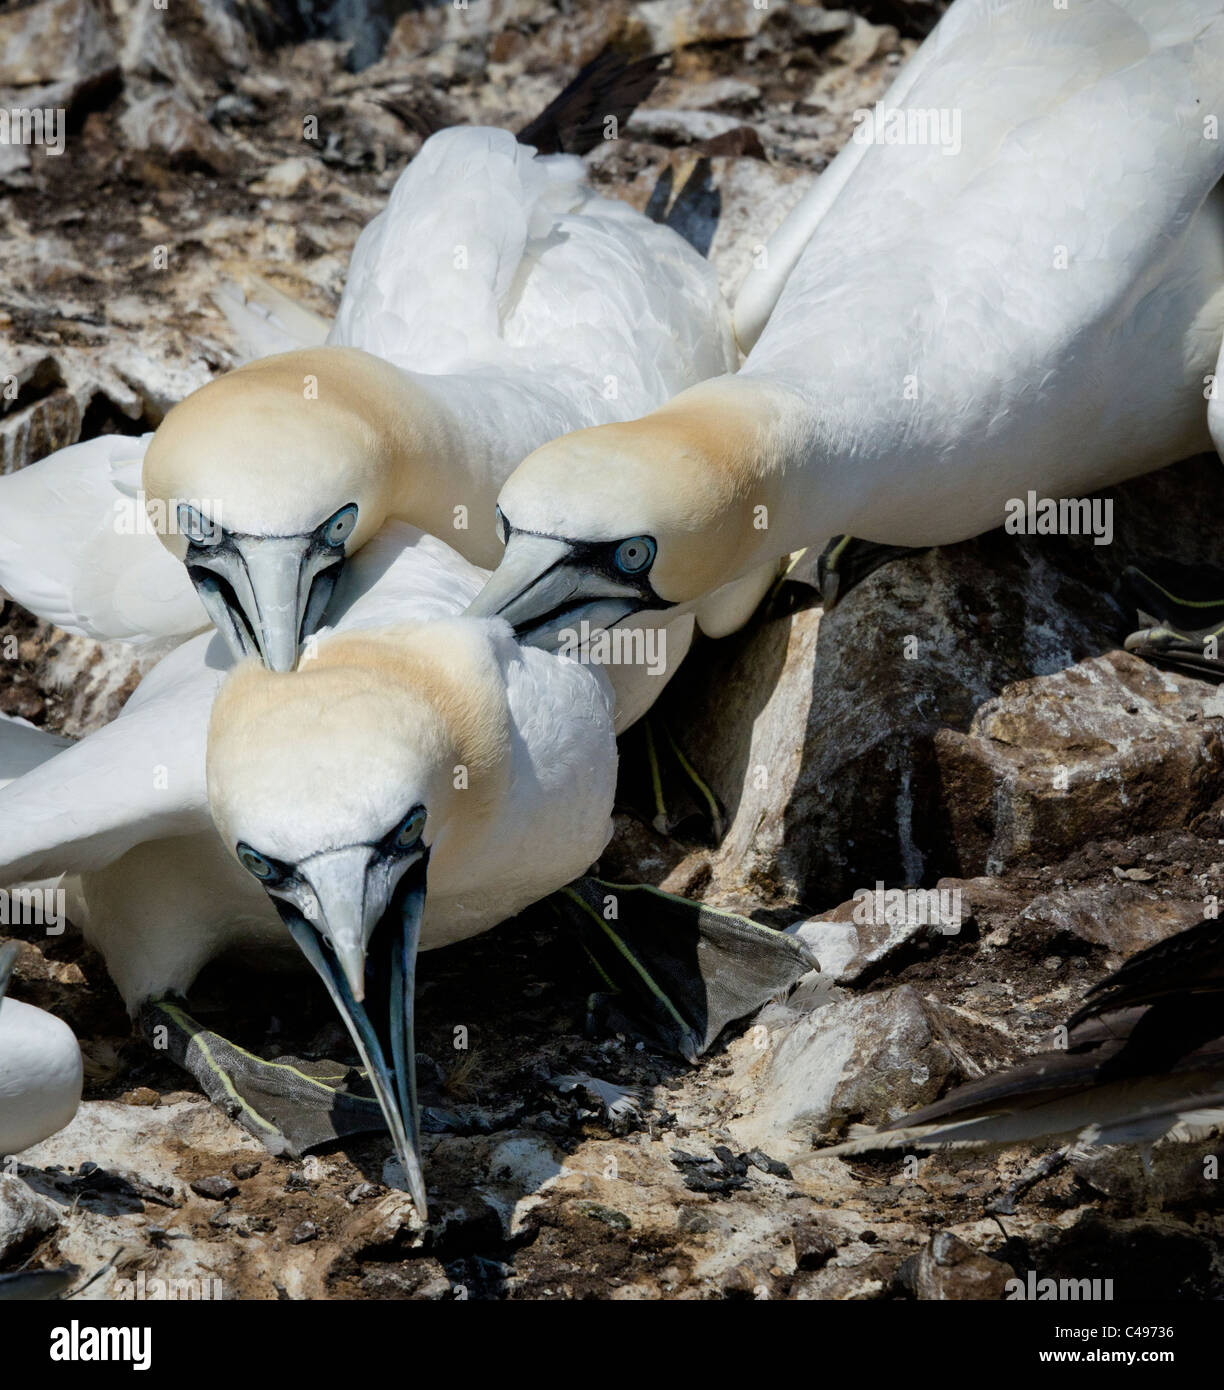 Aggression between Gannets on a crowded bird colony - Stock Image